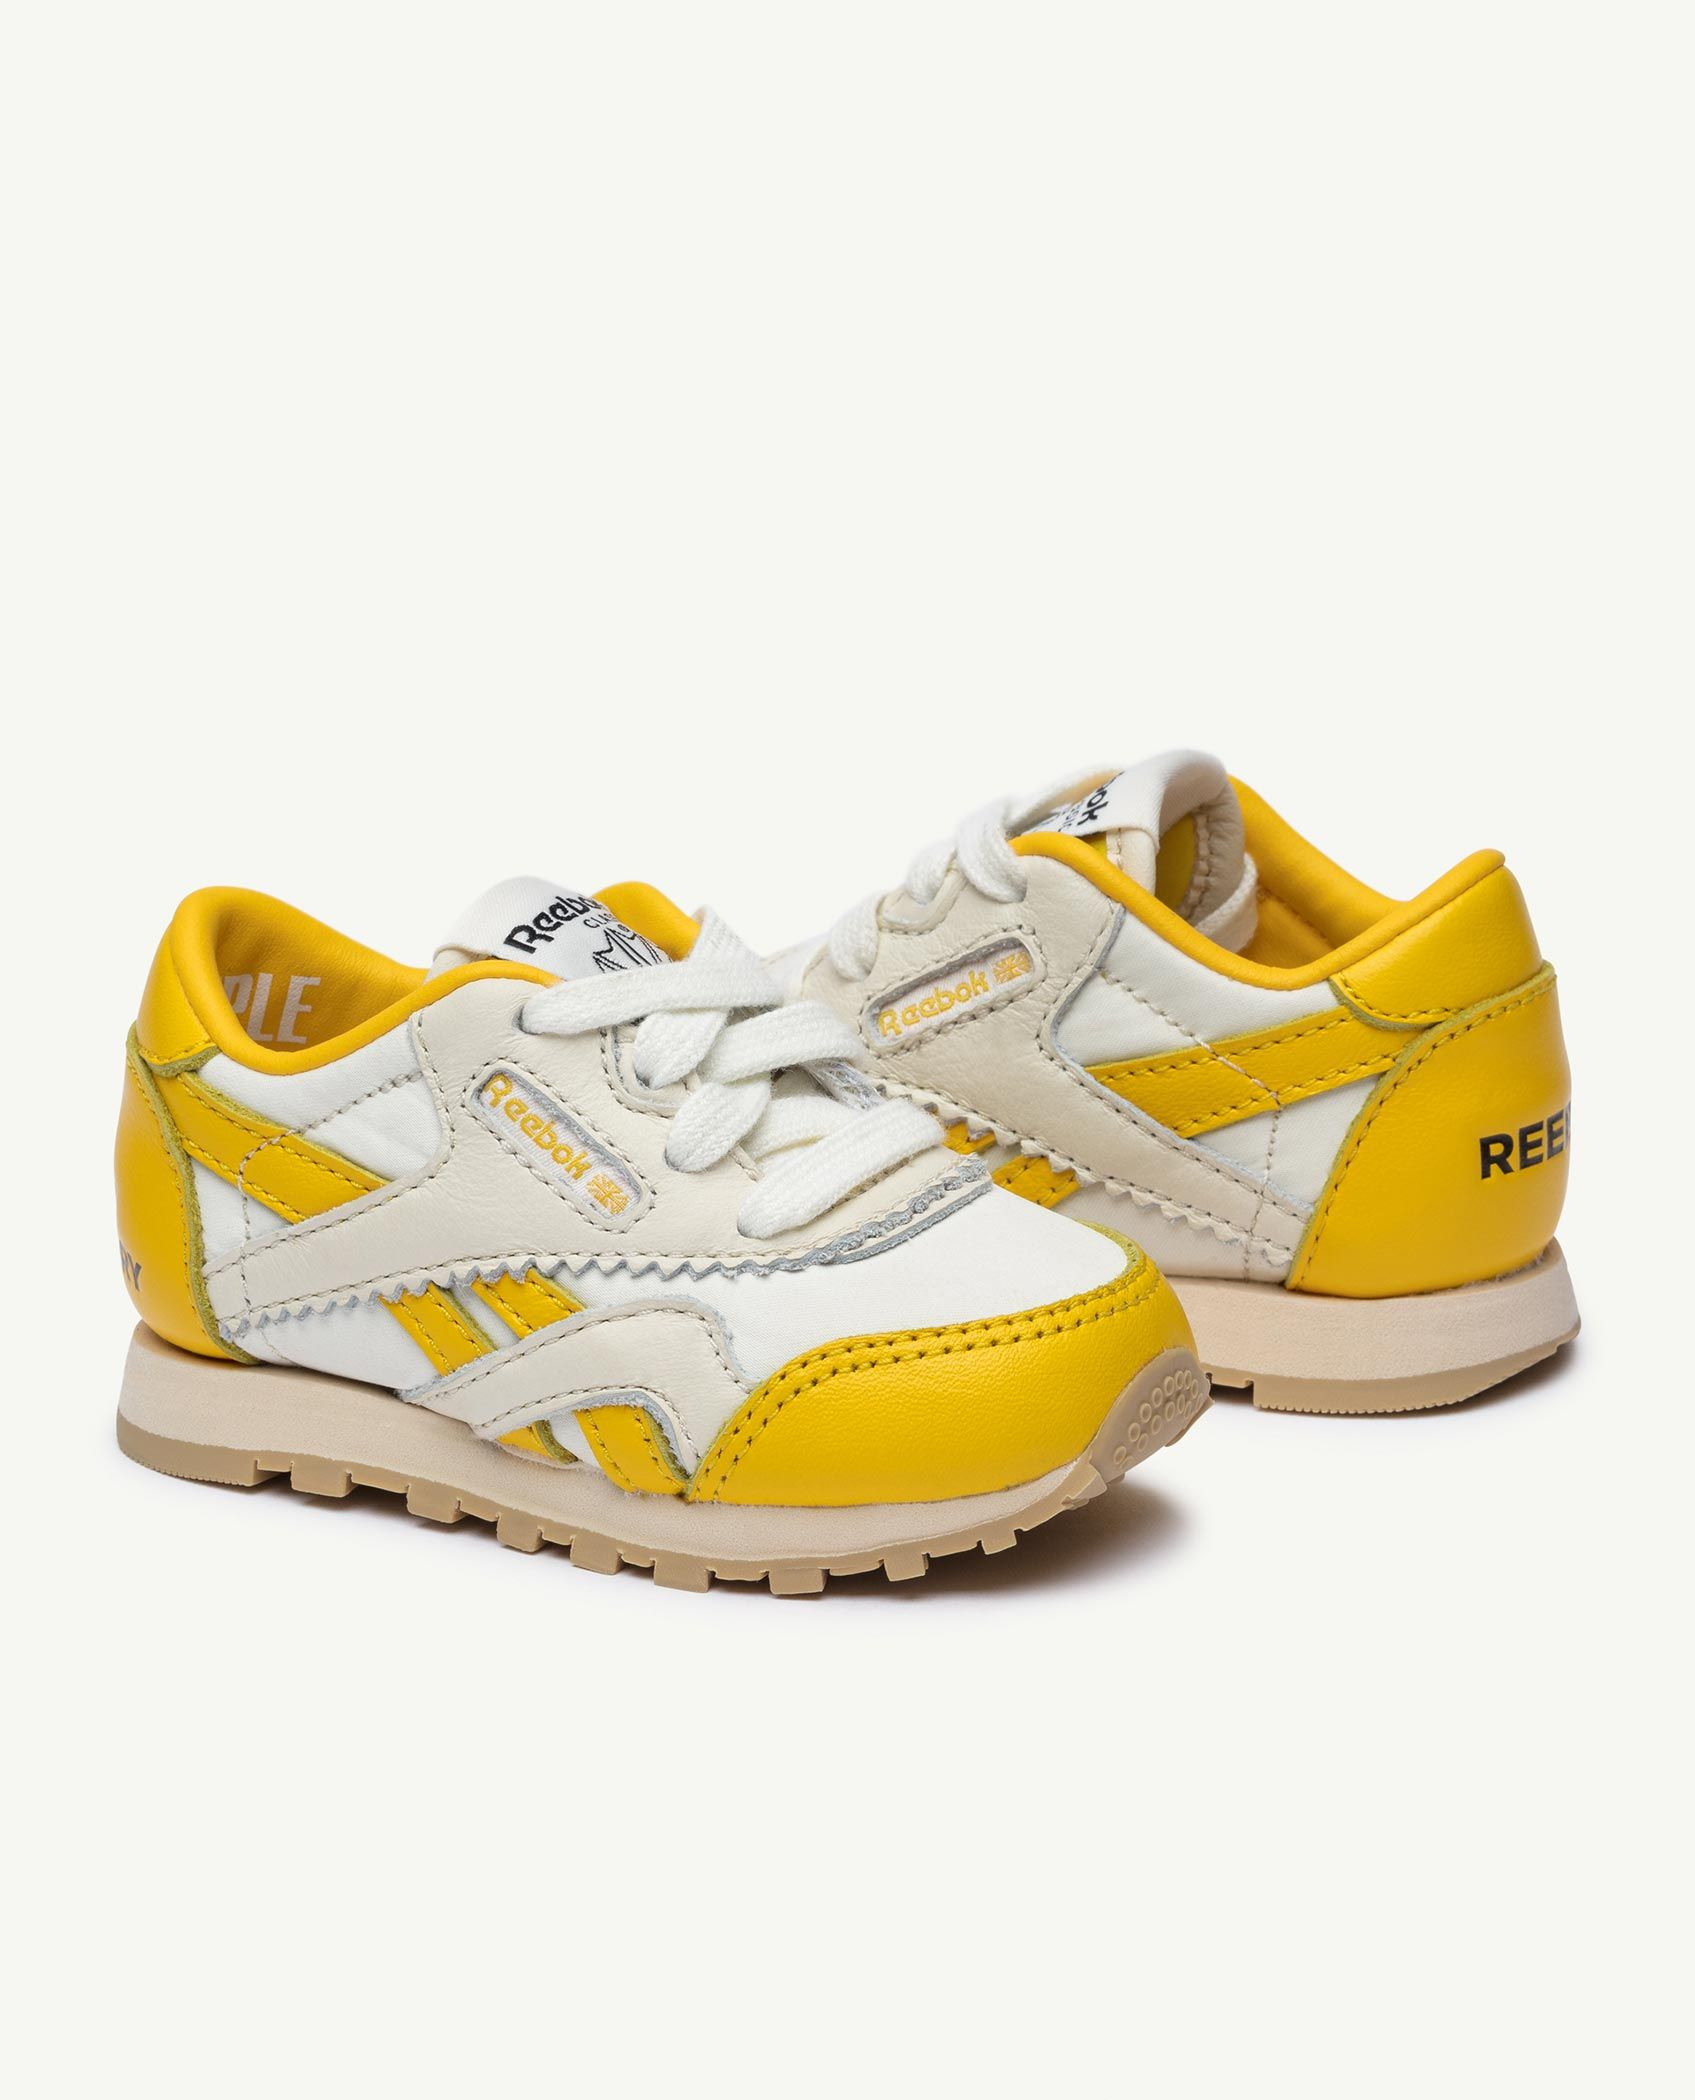 Reebok x The Animals Observatory Classic Nylon Yellow Baby img-3